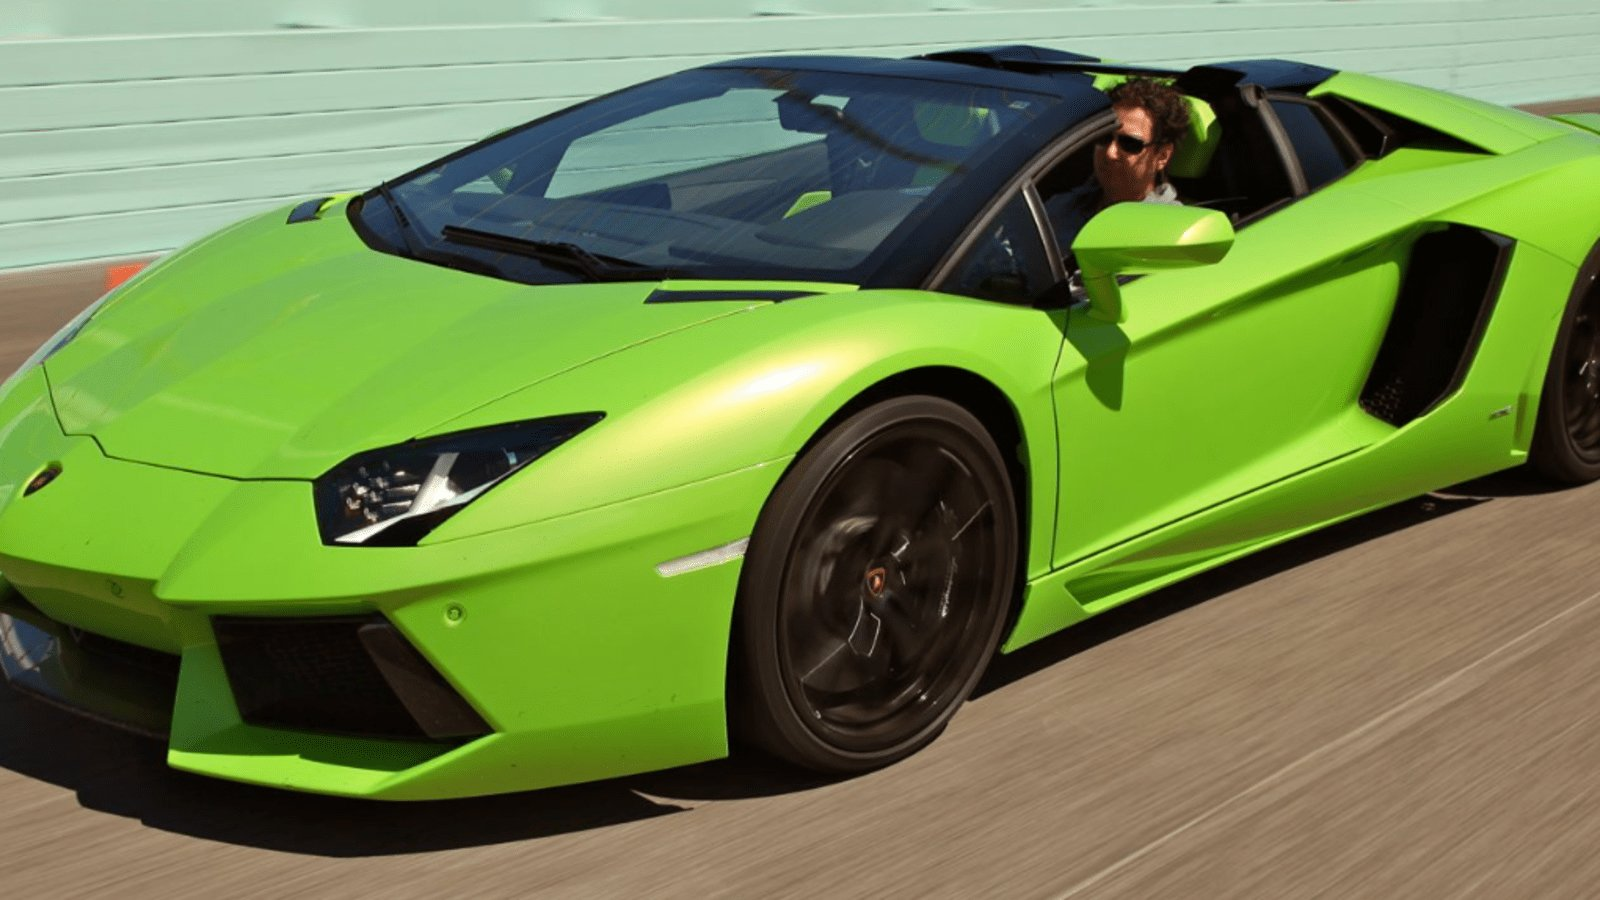 Latest The Ten Best Cars To Make Your Ex Jealous Free Download